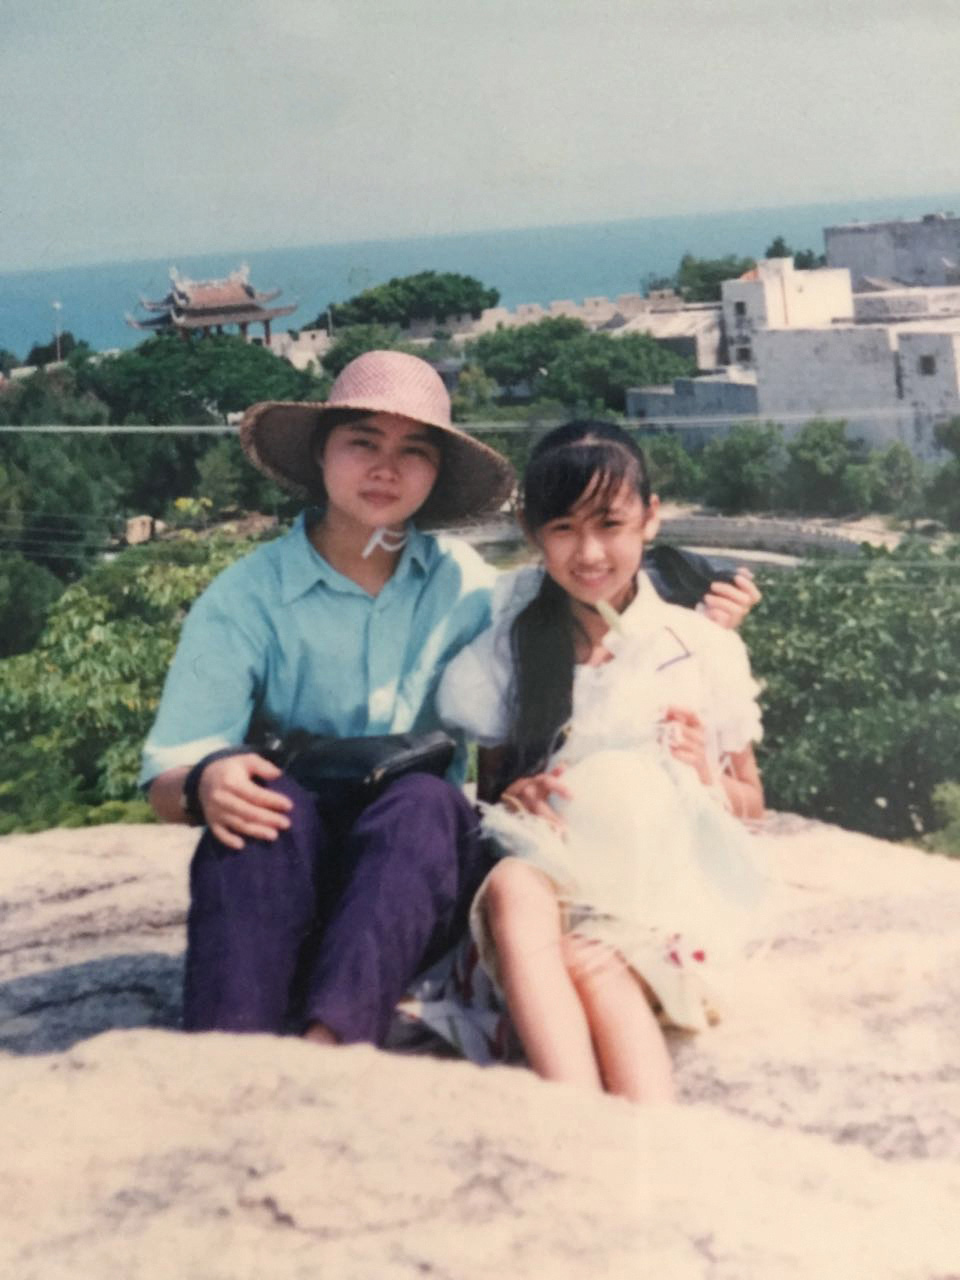 Becky and her aunt sit in a park in Guangdong in the 1980s